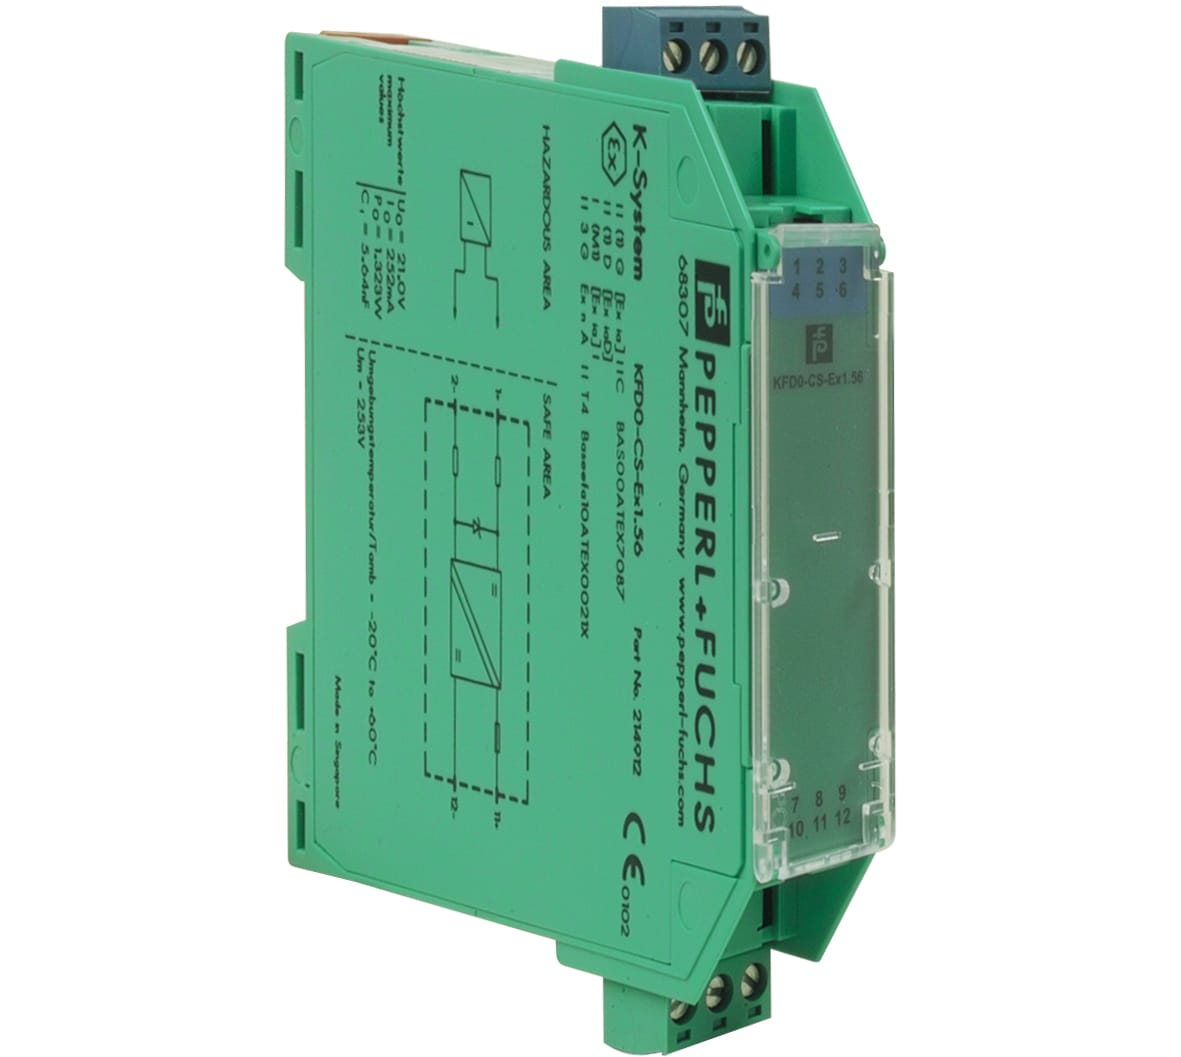 Ex Barrier For Intrinsic Safe Detectors Series Iq8quad I Intrinsically Wiring Business